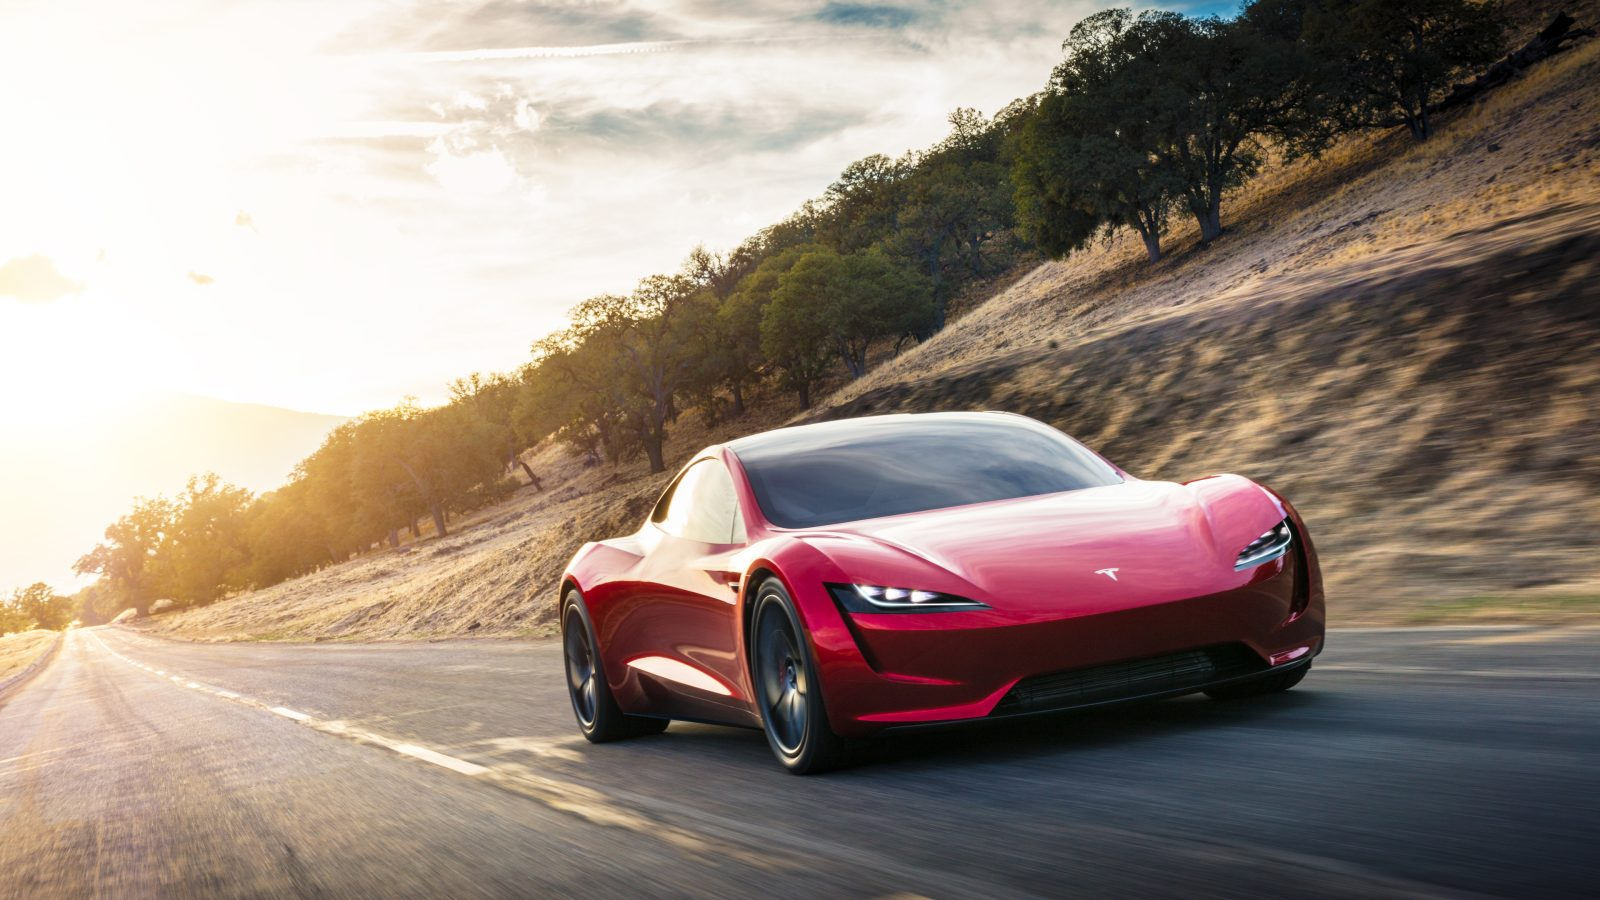 medium resolution of tesla s next gen roadster a speculative technical look at the car that will smack down gasoline powered cars